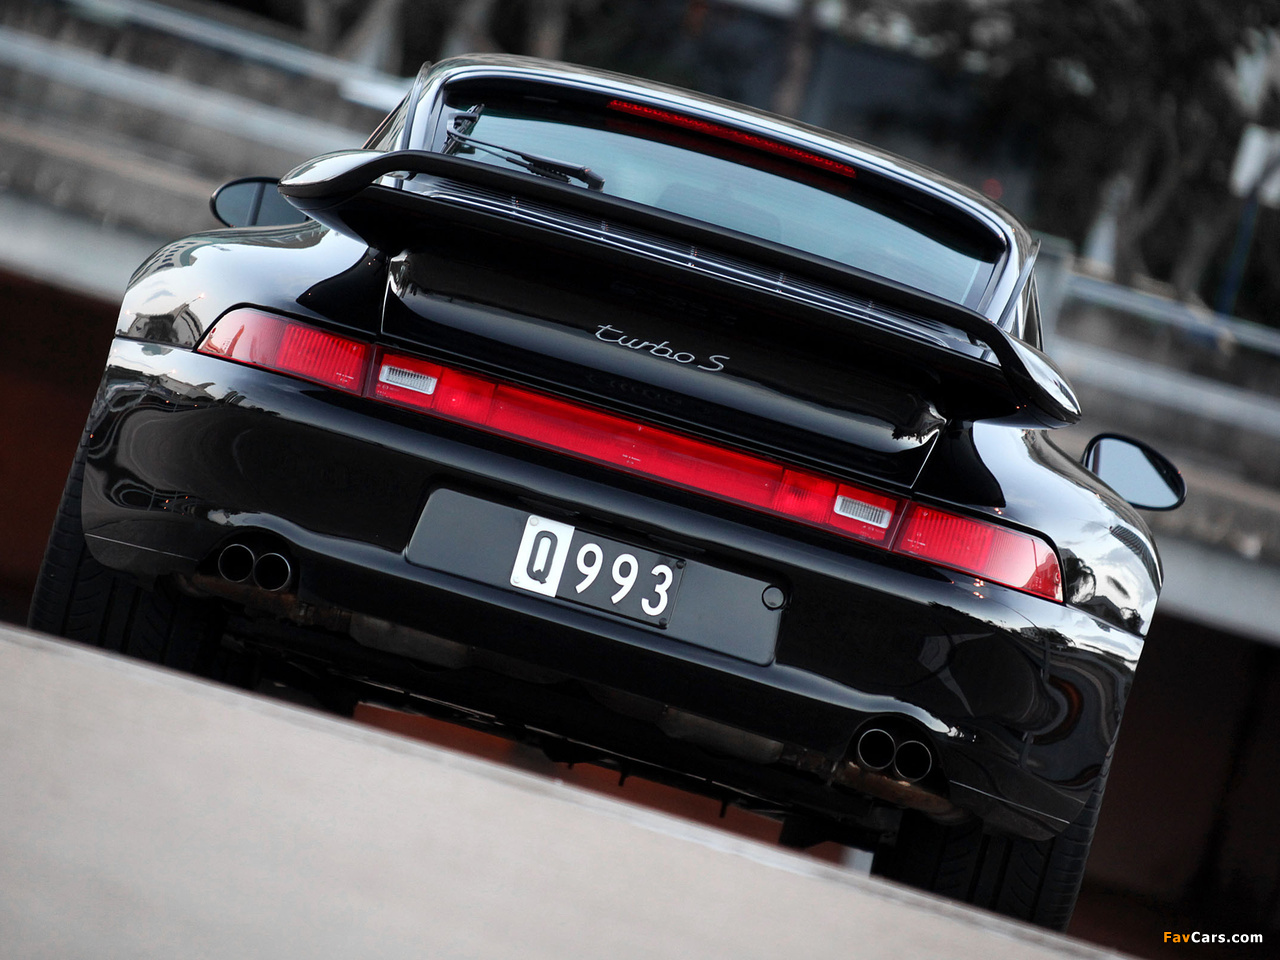 Porsche 911 Turbo S 3 6 Coupe 993 1997 98 Wallpapers 1280x960